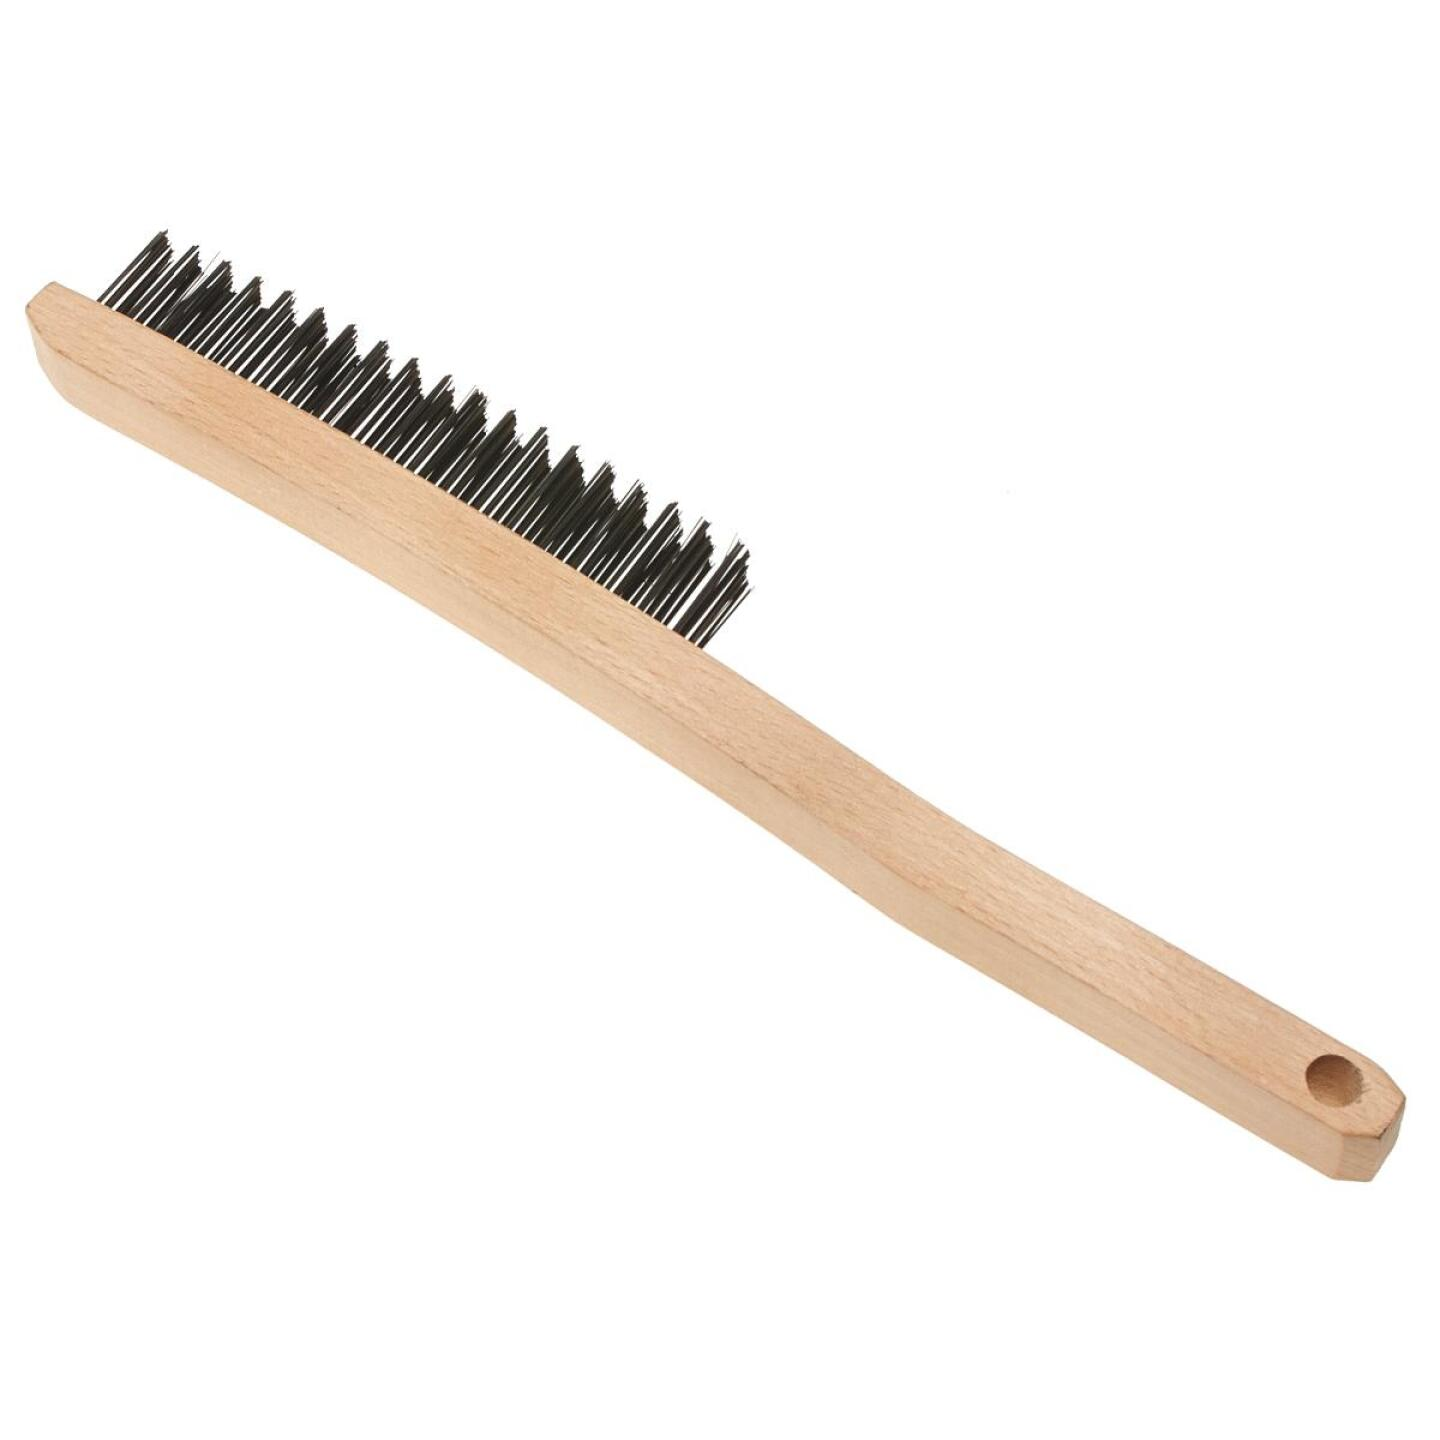 Best Look Long Curved Handle Wire Brush Image 1